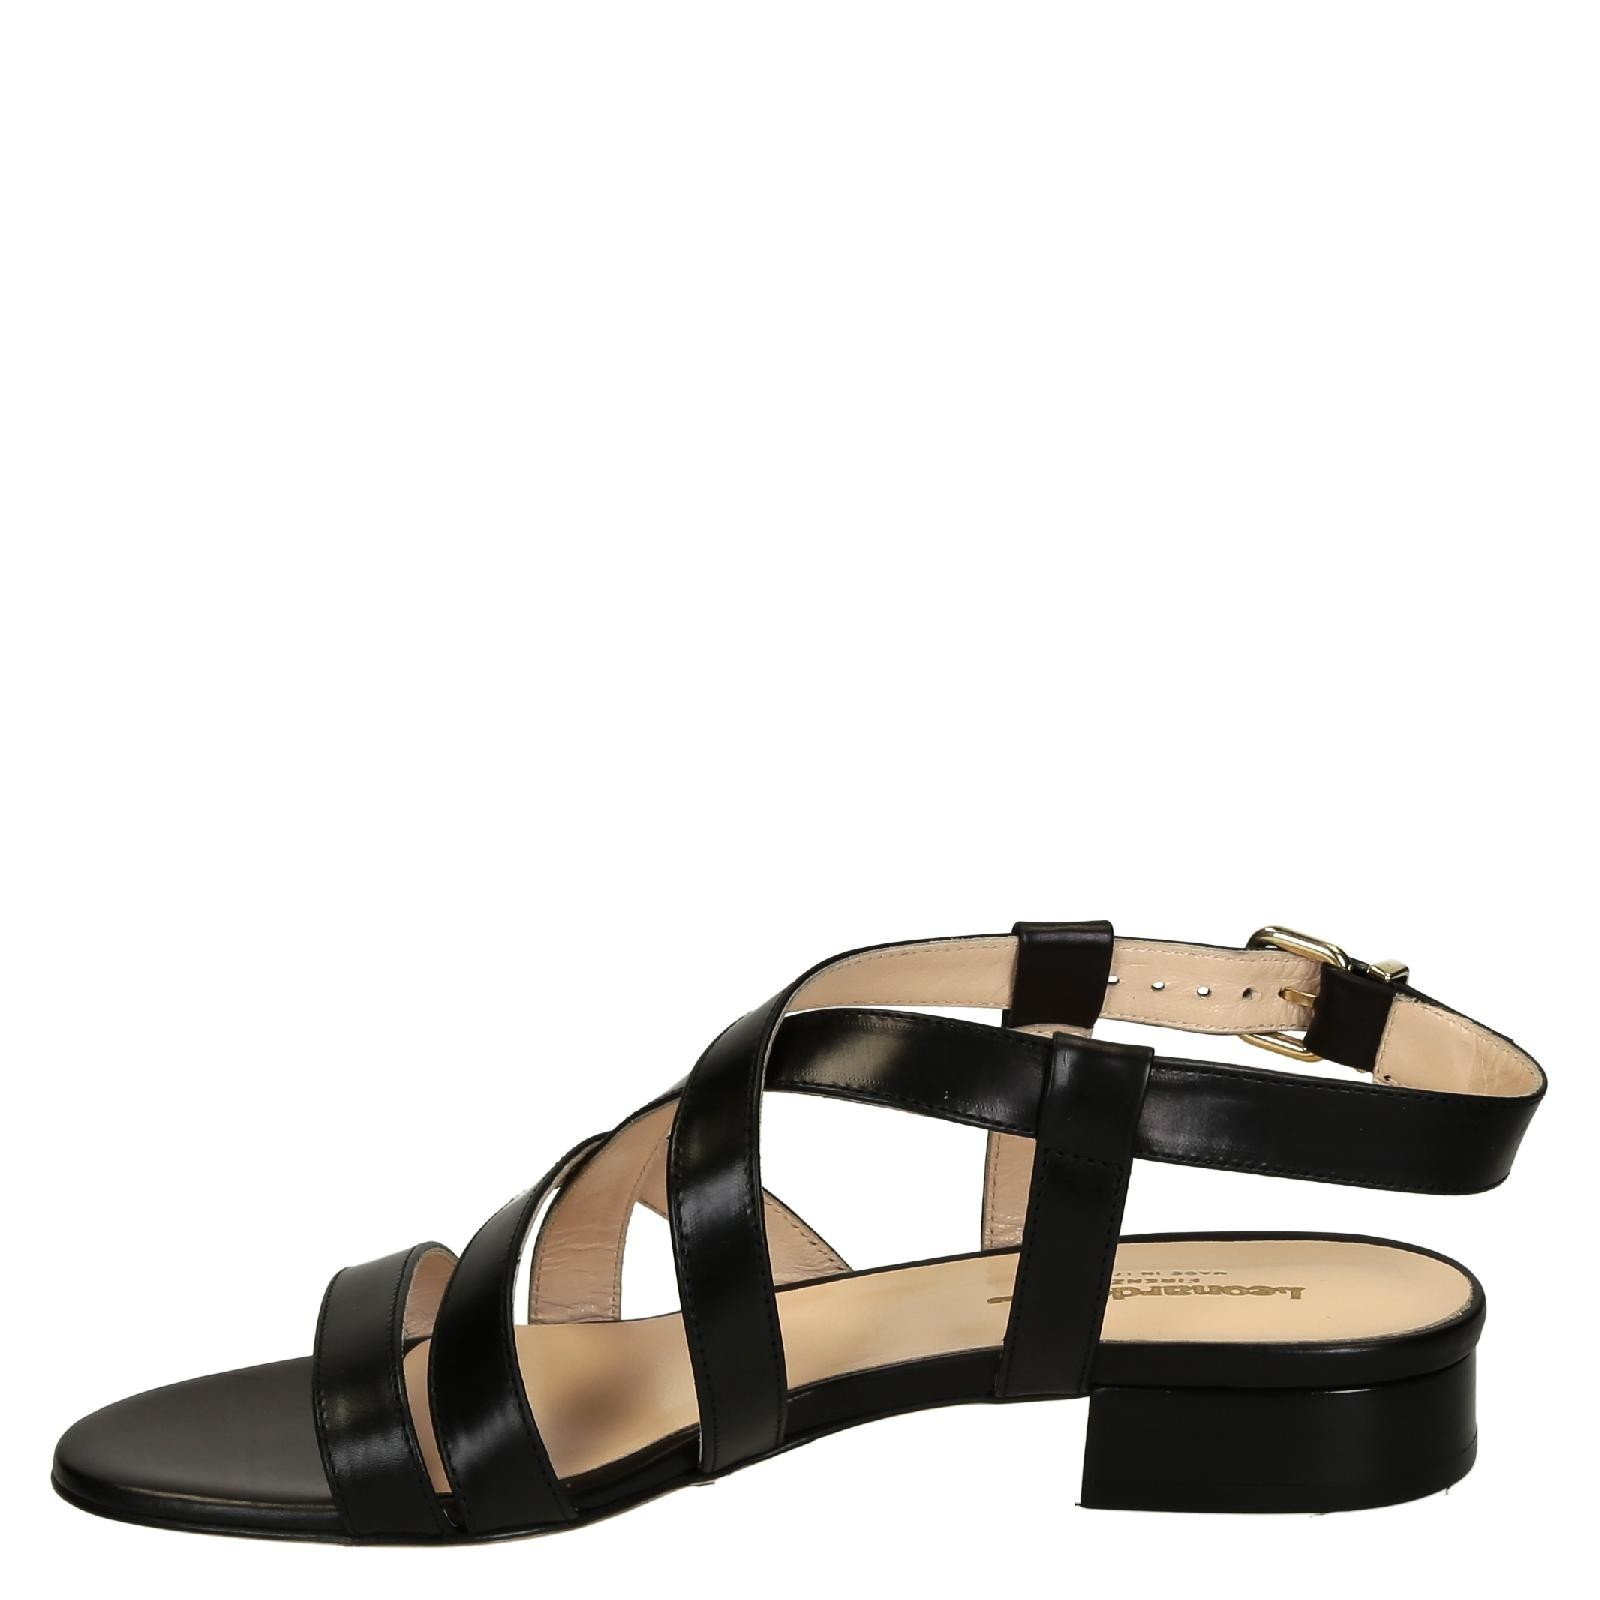 low heels black leather strappy sandals for women 3